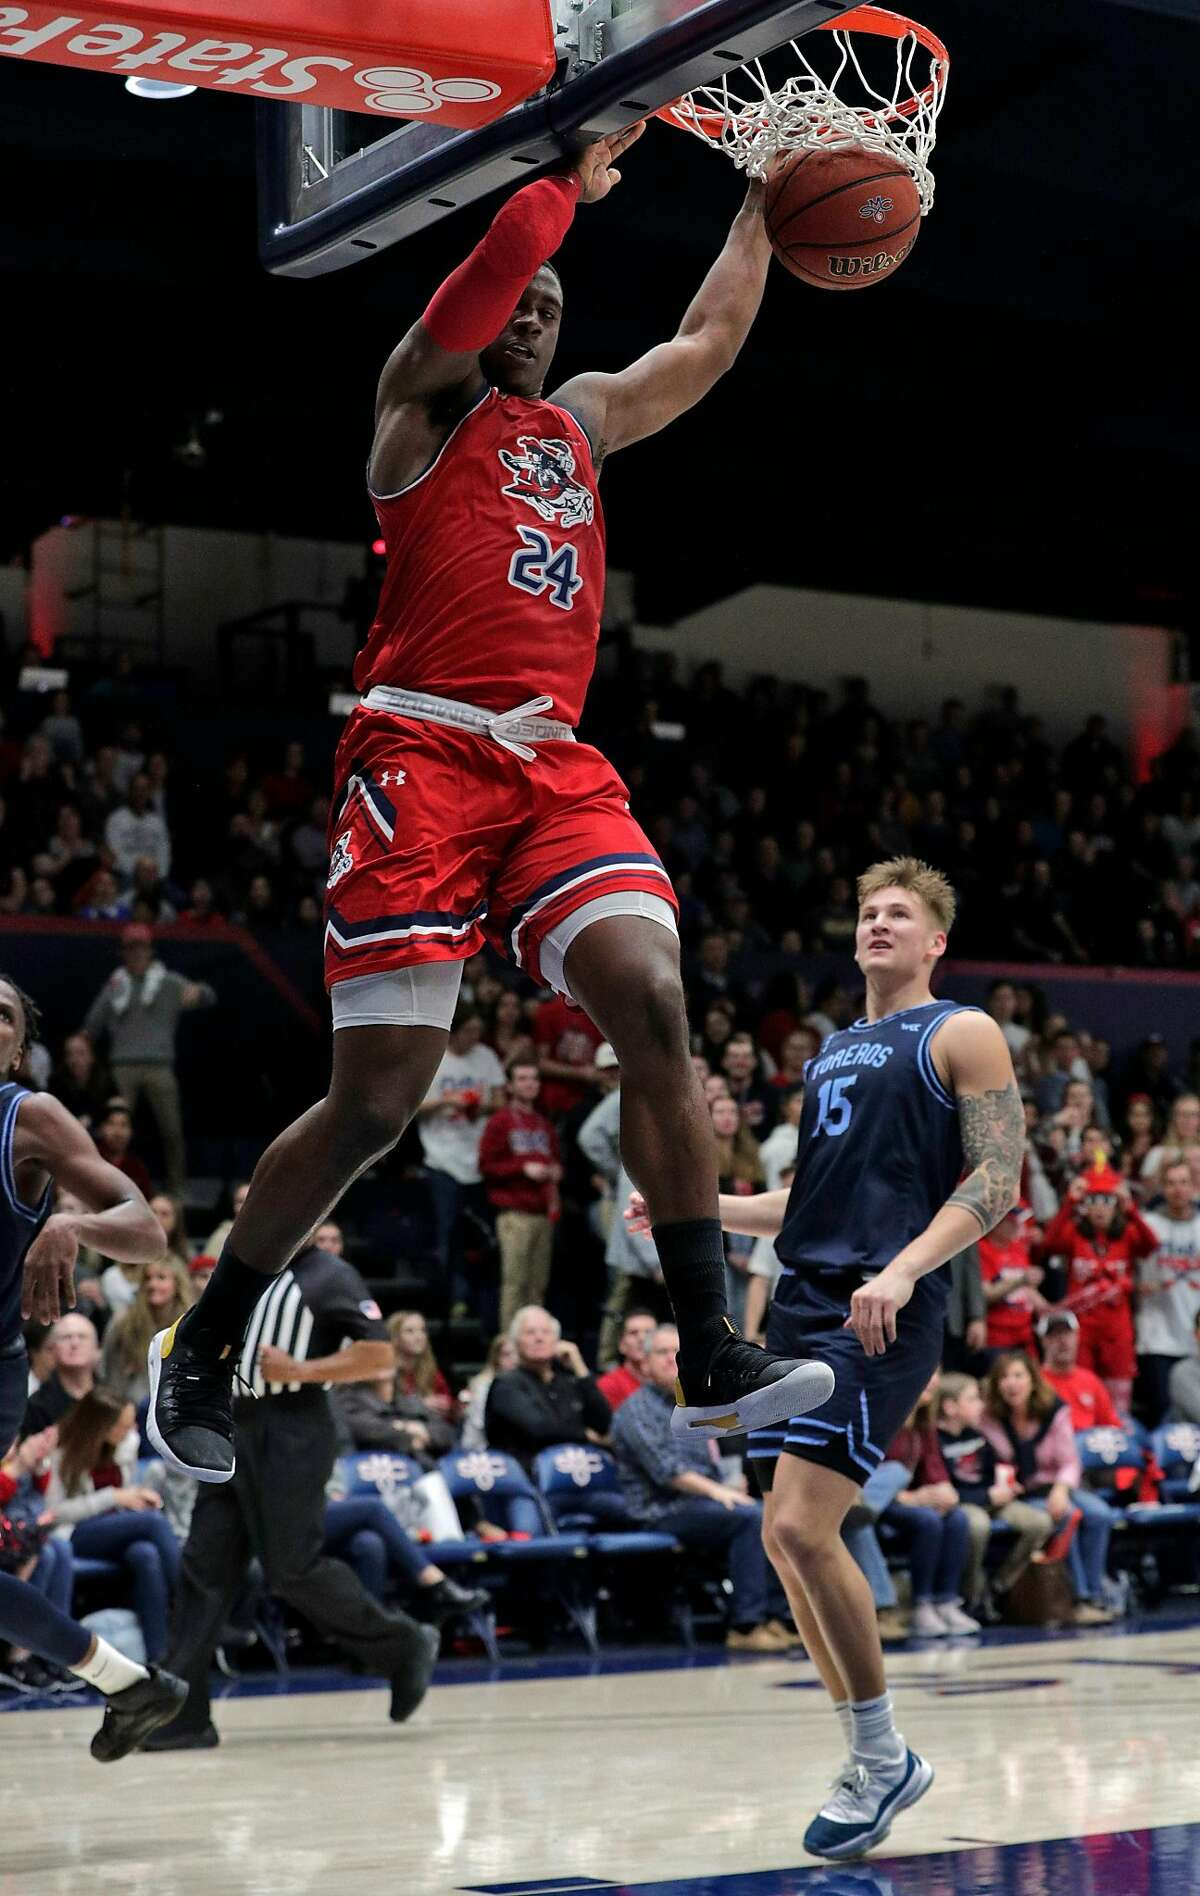 Malik Fitts (24) dunks the ball in the first half as the St. Mary's Gaels played the University of San Diego Toreros at McKeon Pavilion in the Gael's final home game in Moraga, Calif., on Saturday, February 22, 2020.